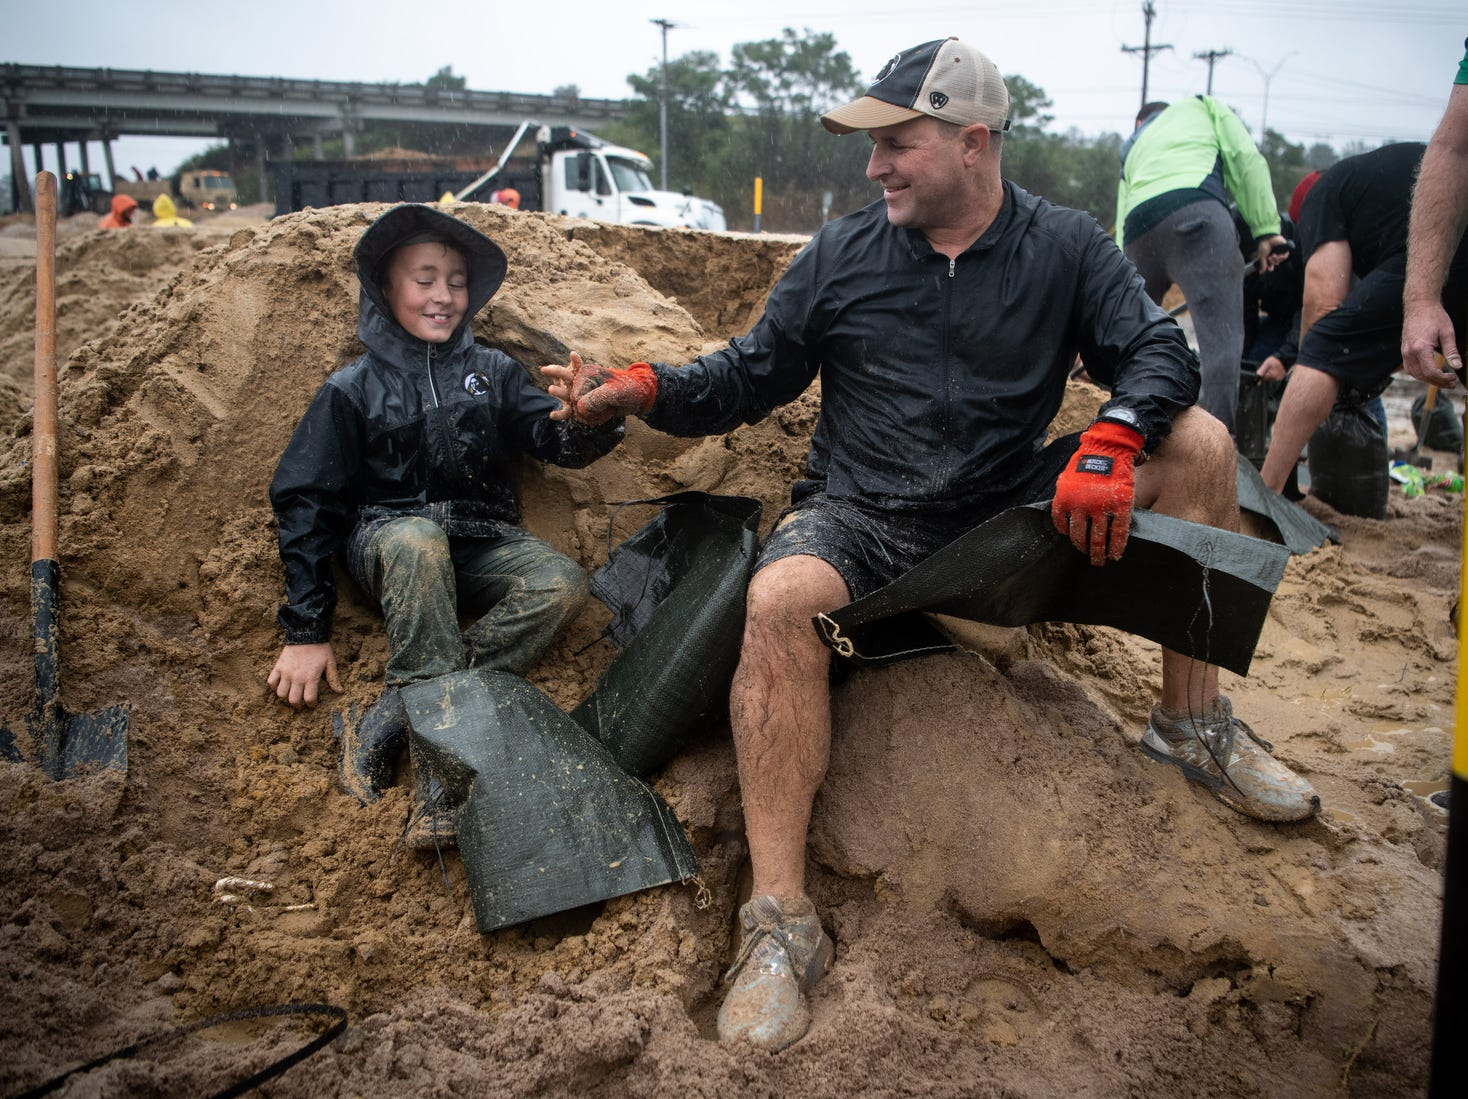 Volunteers Rivers Malcolm, left, 9, and Ben Miller, right, bump fists while filling sandbags to help reinforce a low-lying area in Lumberton, N.C..